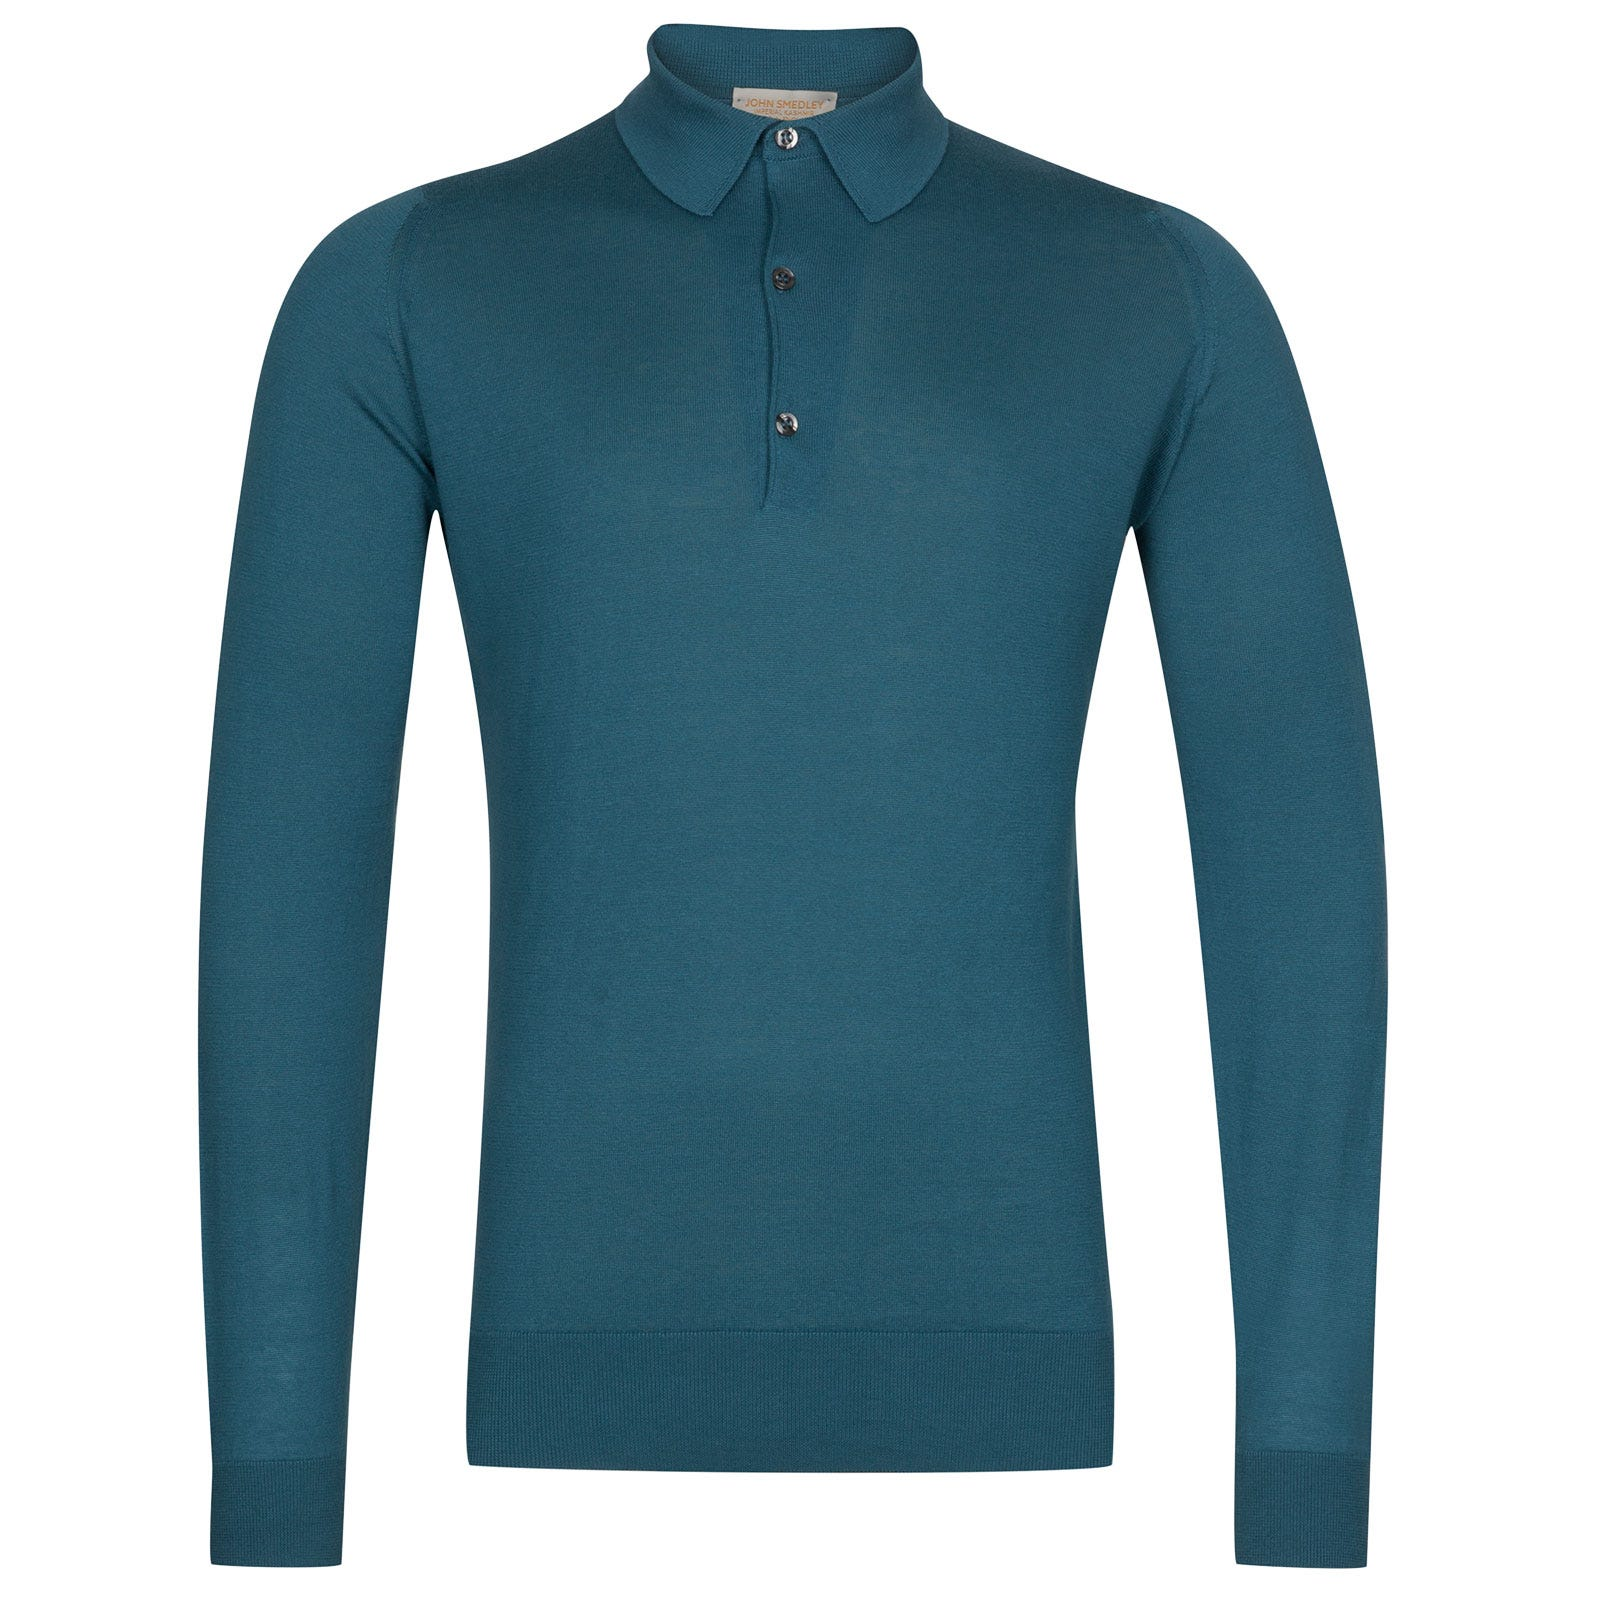 John Smedley Lanlay Sea Island Cotton and Cashmere Shirt in Bias